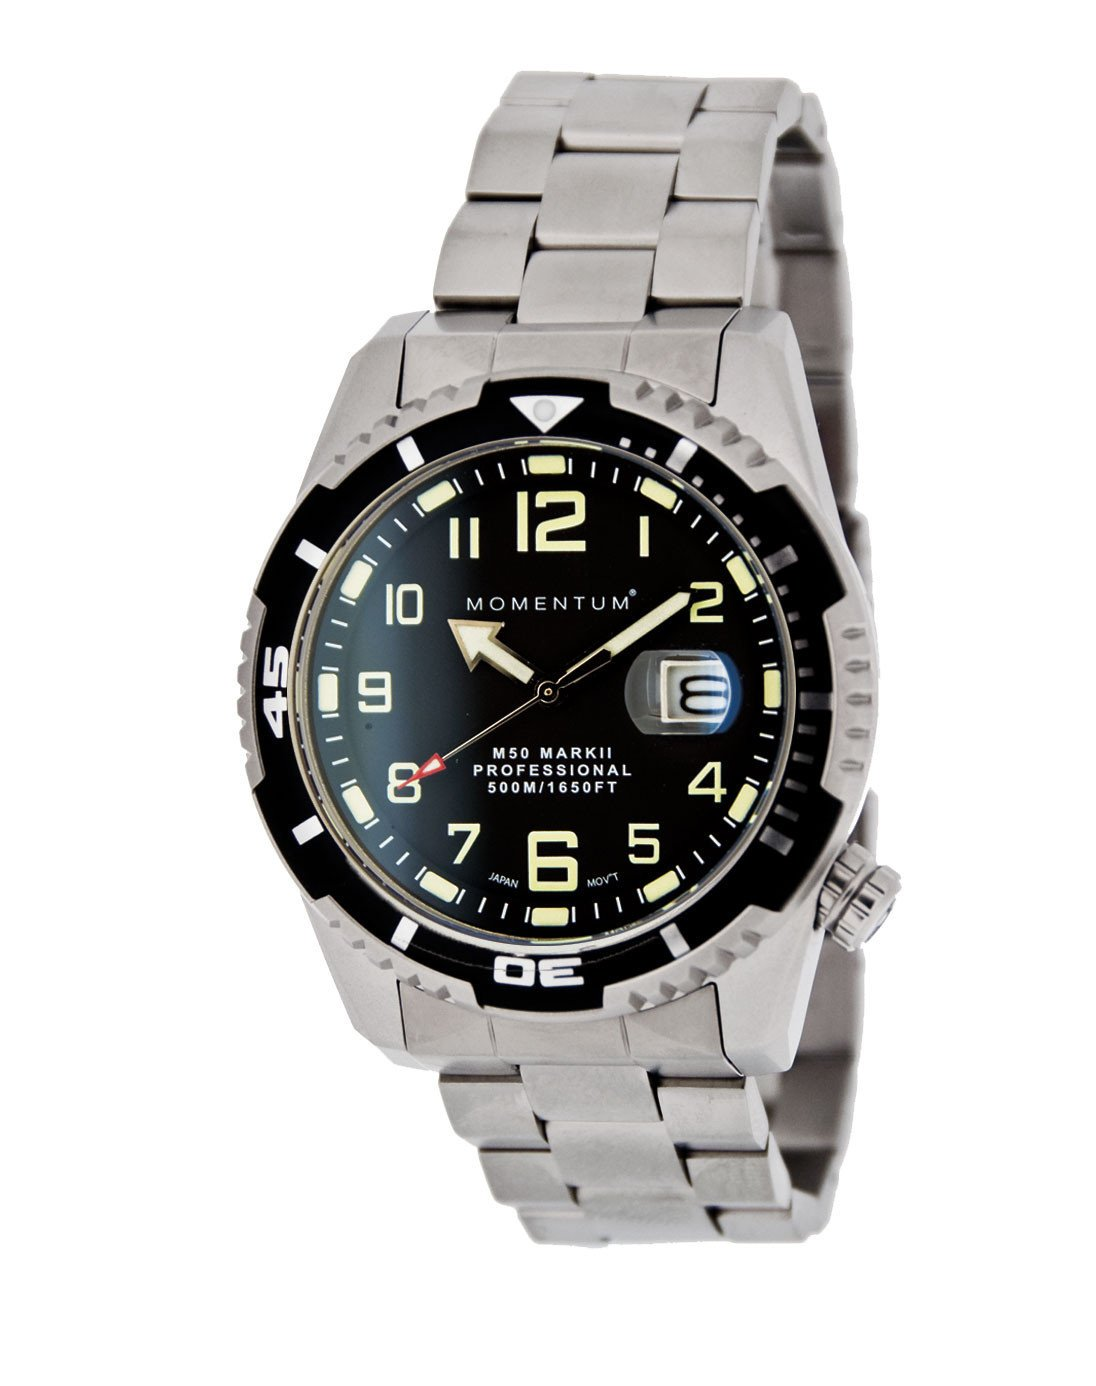 Momentum Watch - M50 Military Dive - Black Dial on Steel bracelet